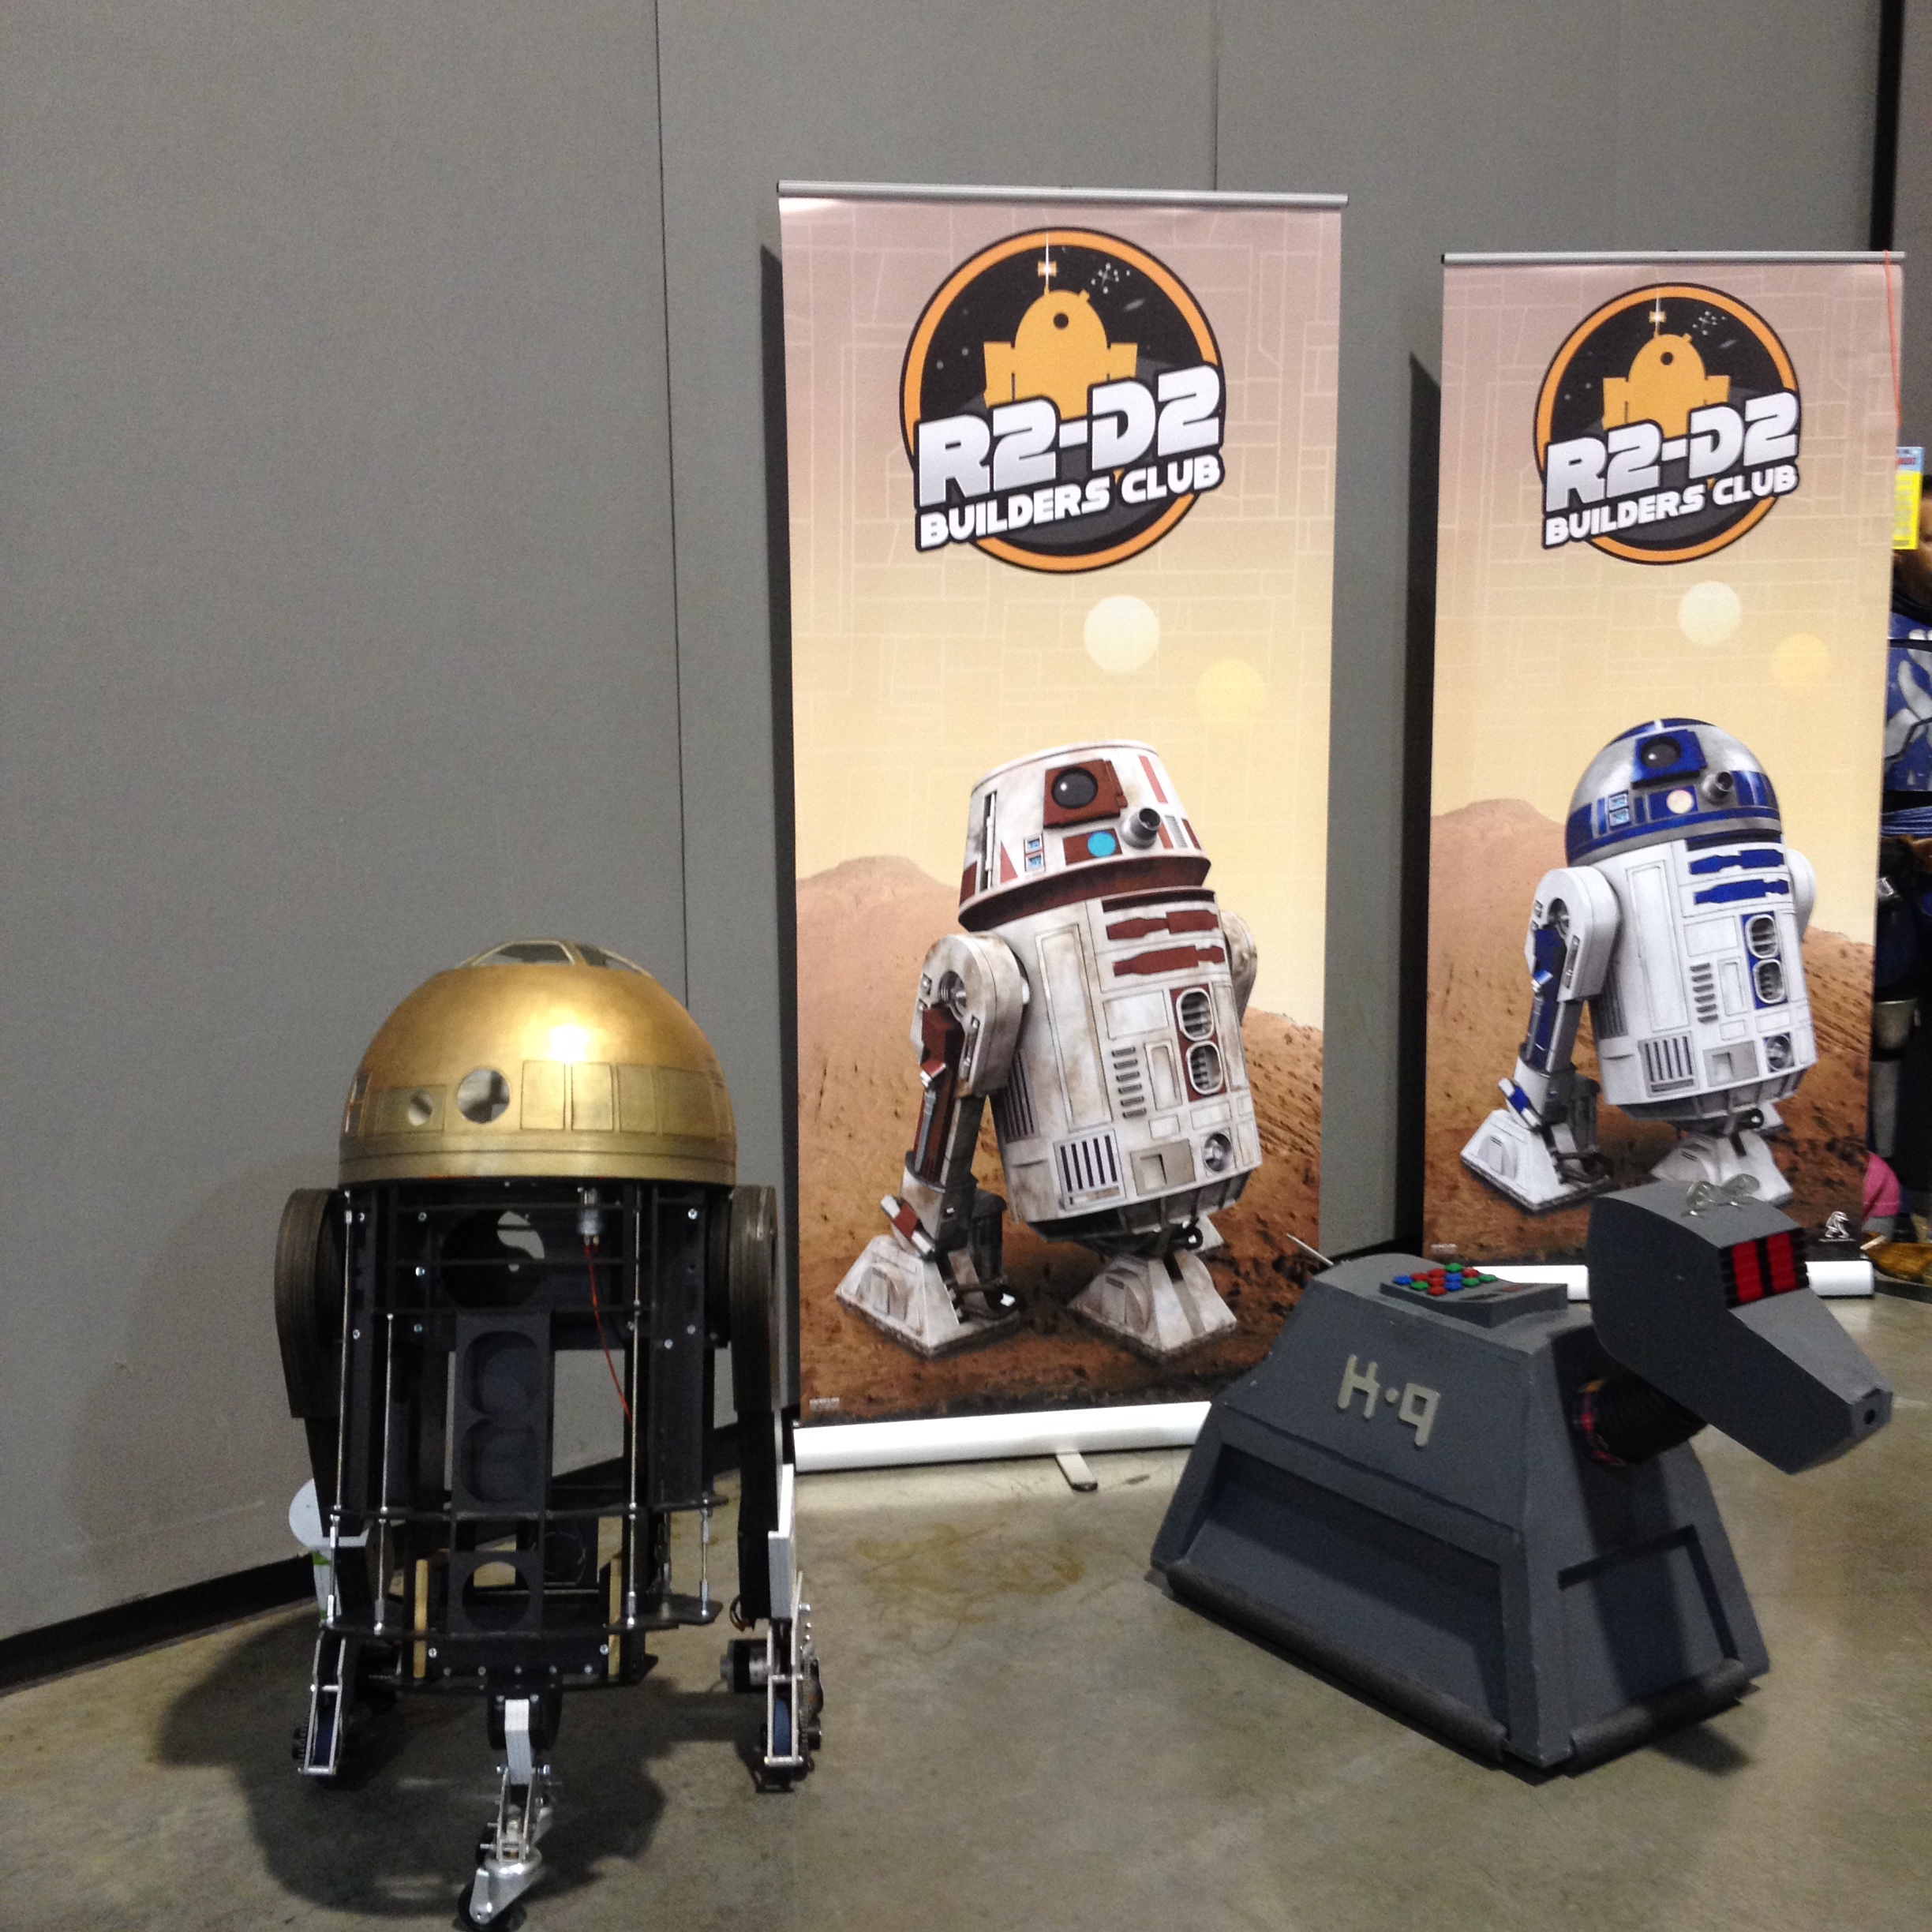 Real-life R2D2